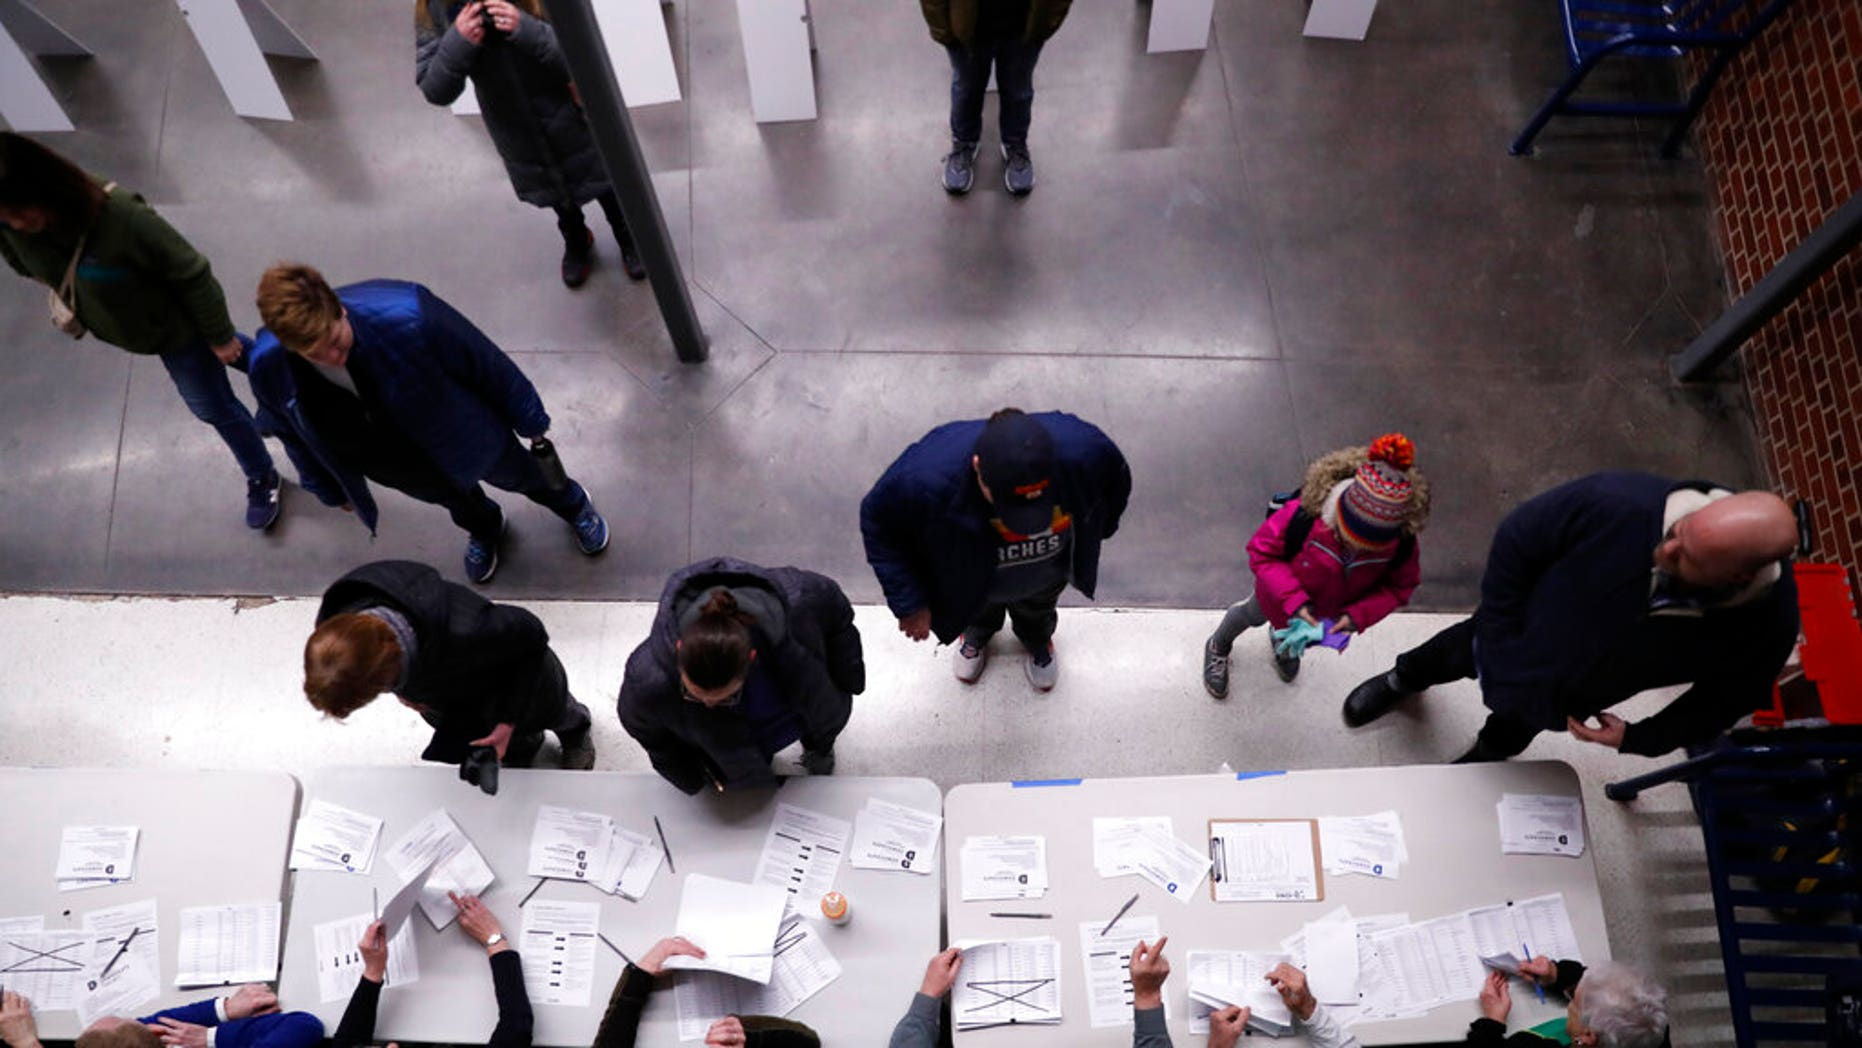 Caucus goers check in at a caucus at Roosevelt High School, Monday, Feb. 3, 2020, in Des Moines, Iowa. (AP Photo/Andrew Harnik)